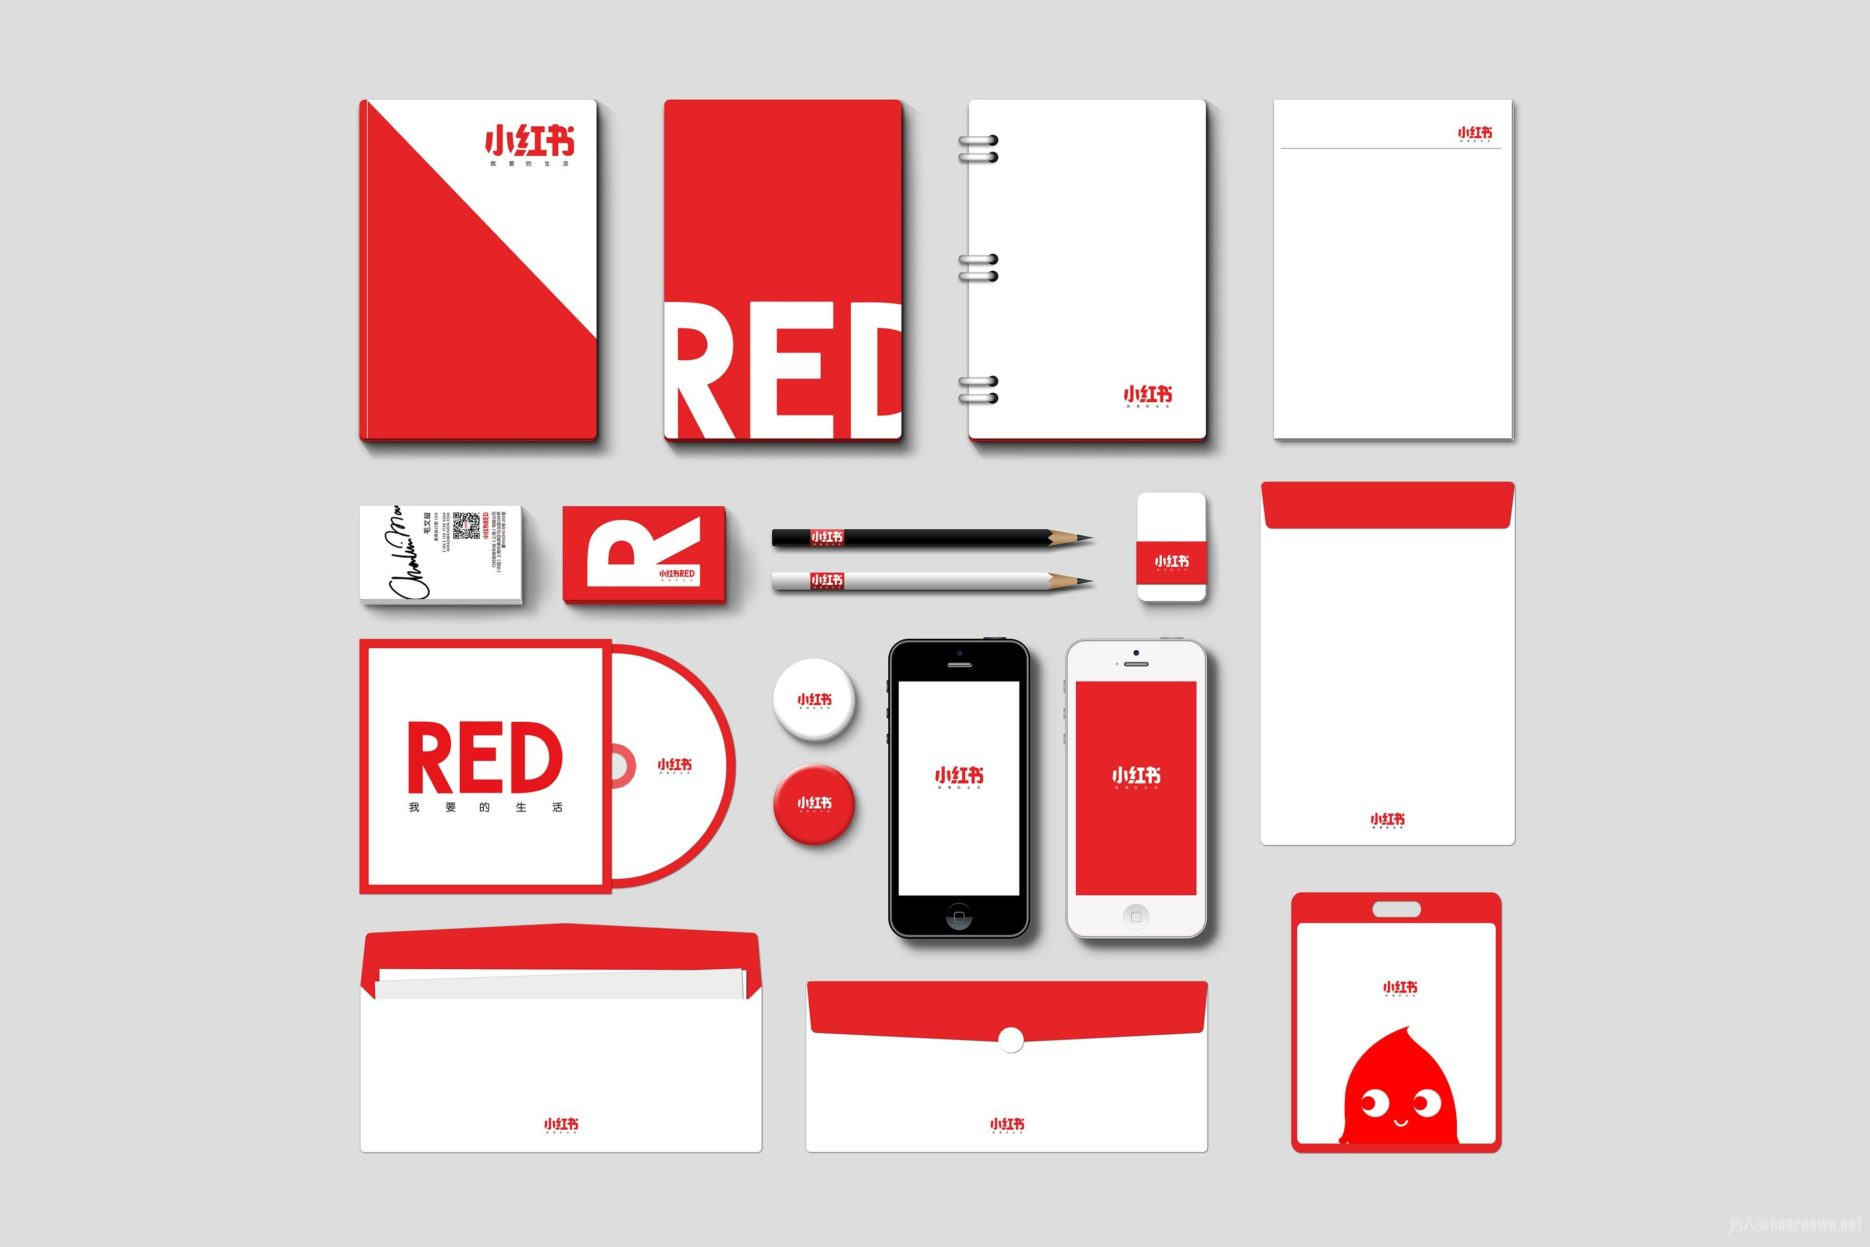 RED products